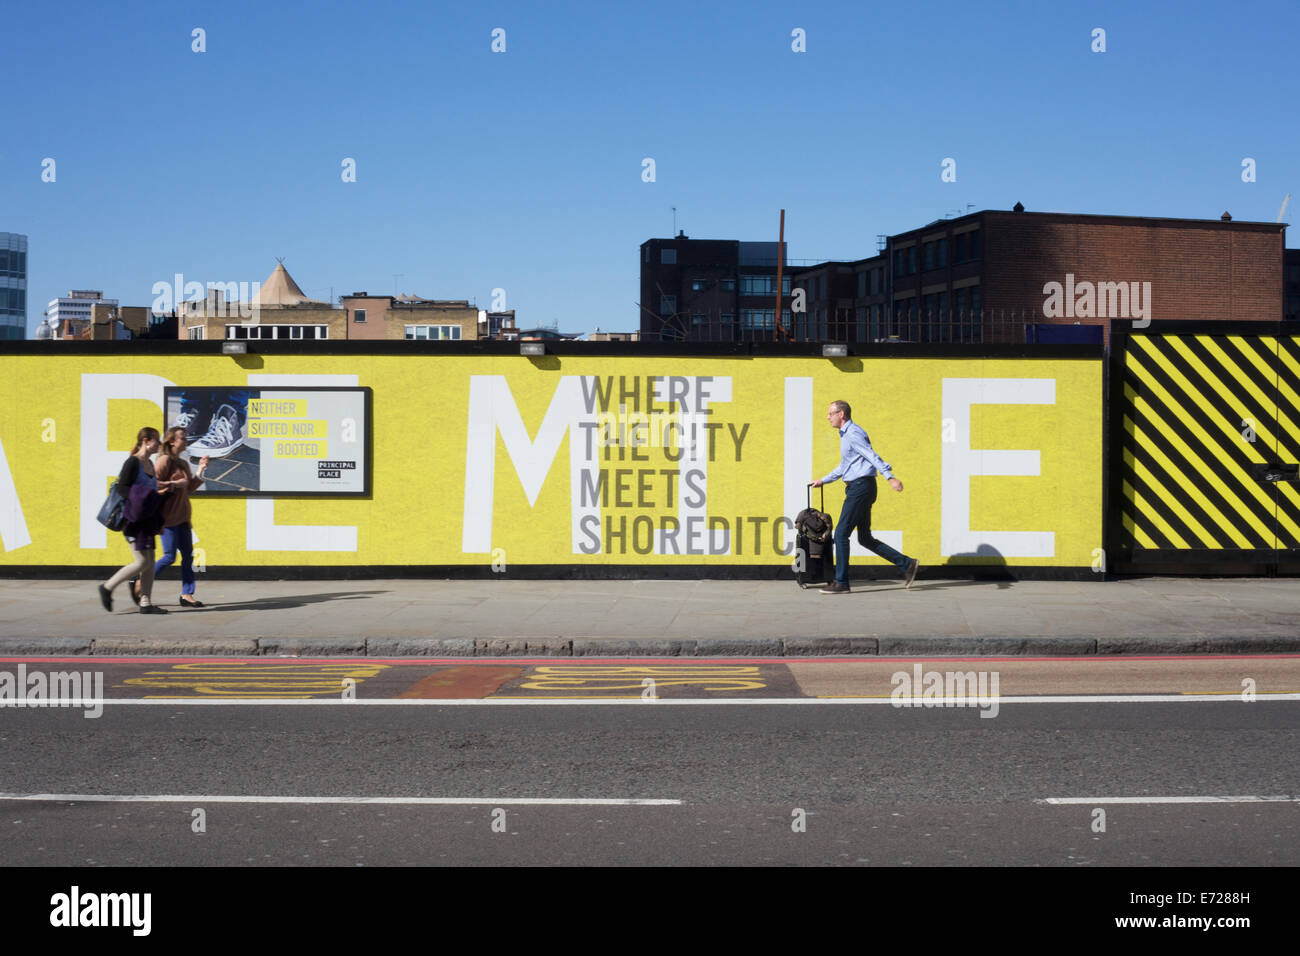 Advertising hoardings in the city of London and Shoreditch, England, UK - Stock Image